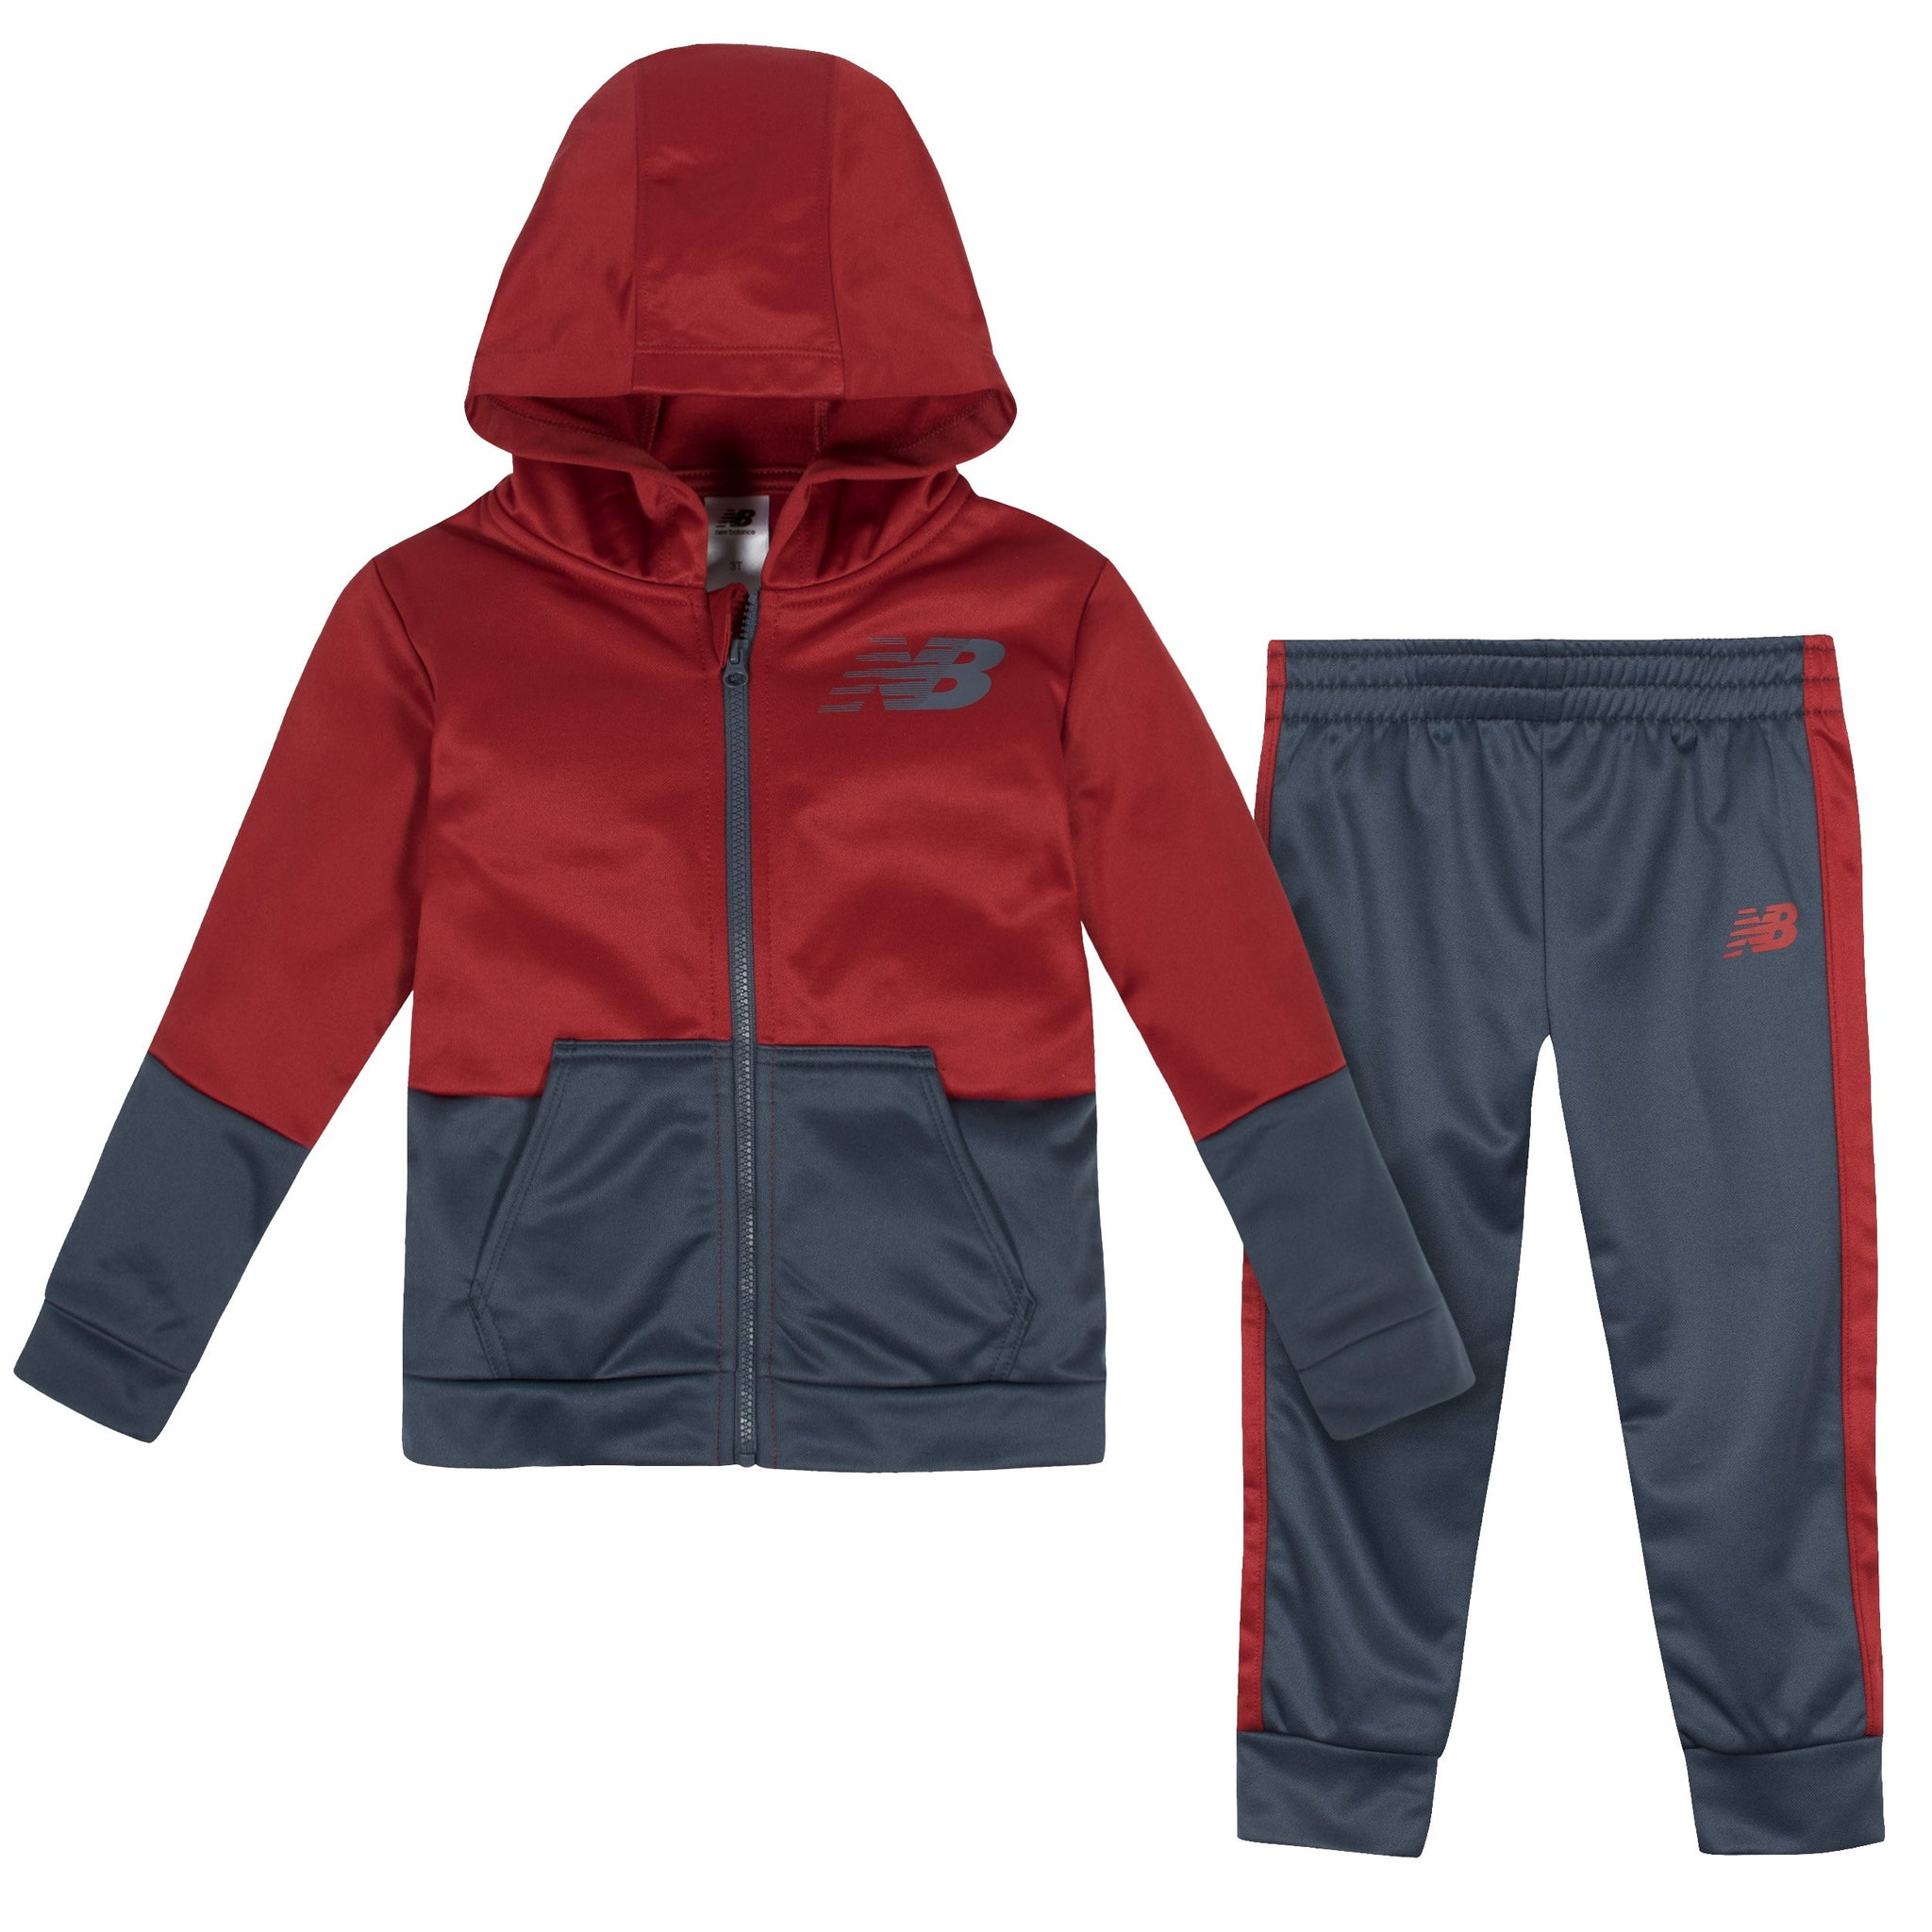 2-Piece Boys' Tempo Red and Thunder Fleece Jacket Set-Gerber Childrenswear